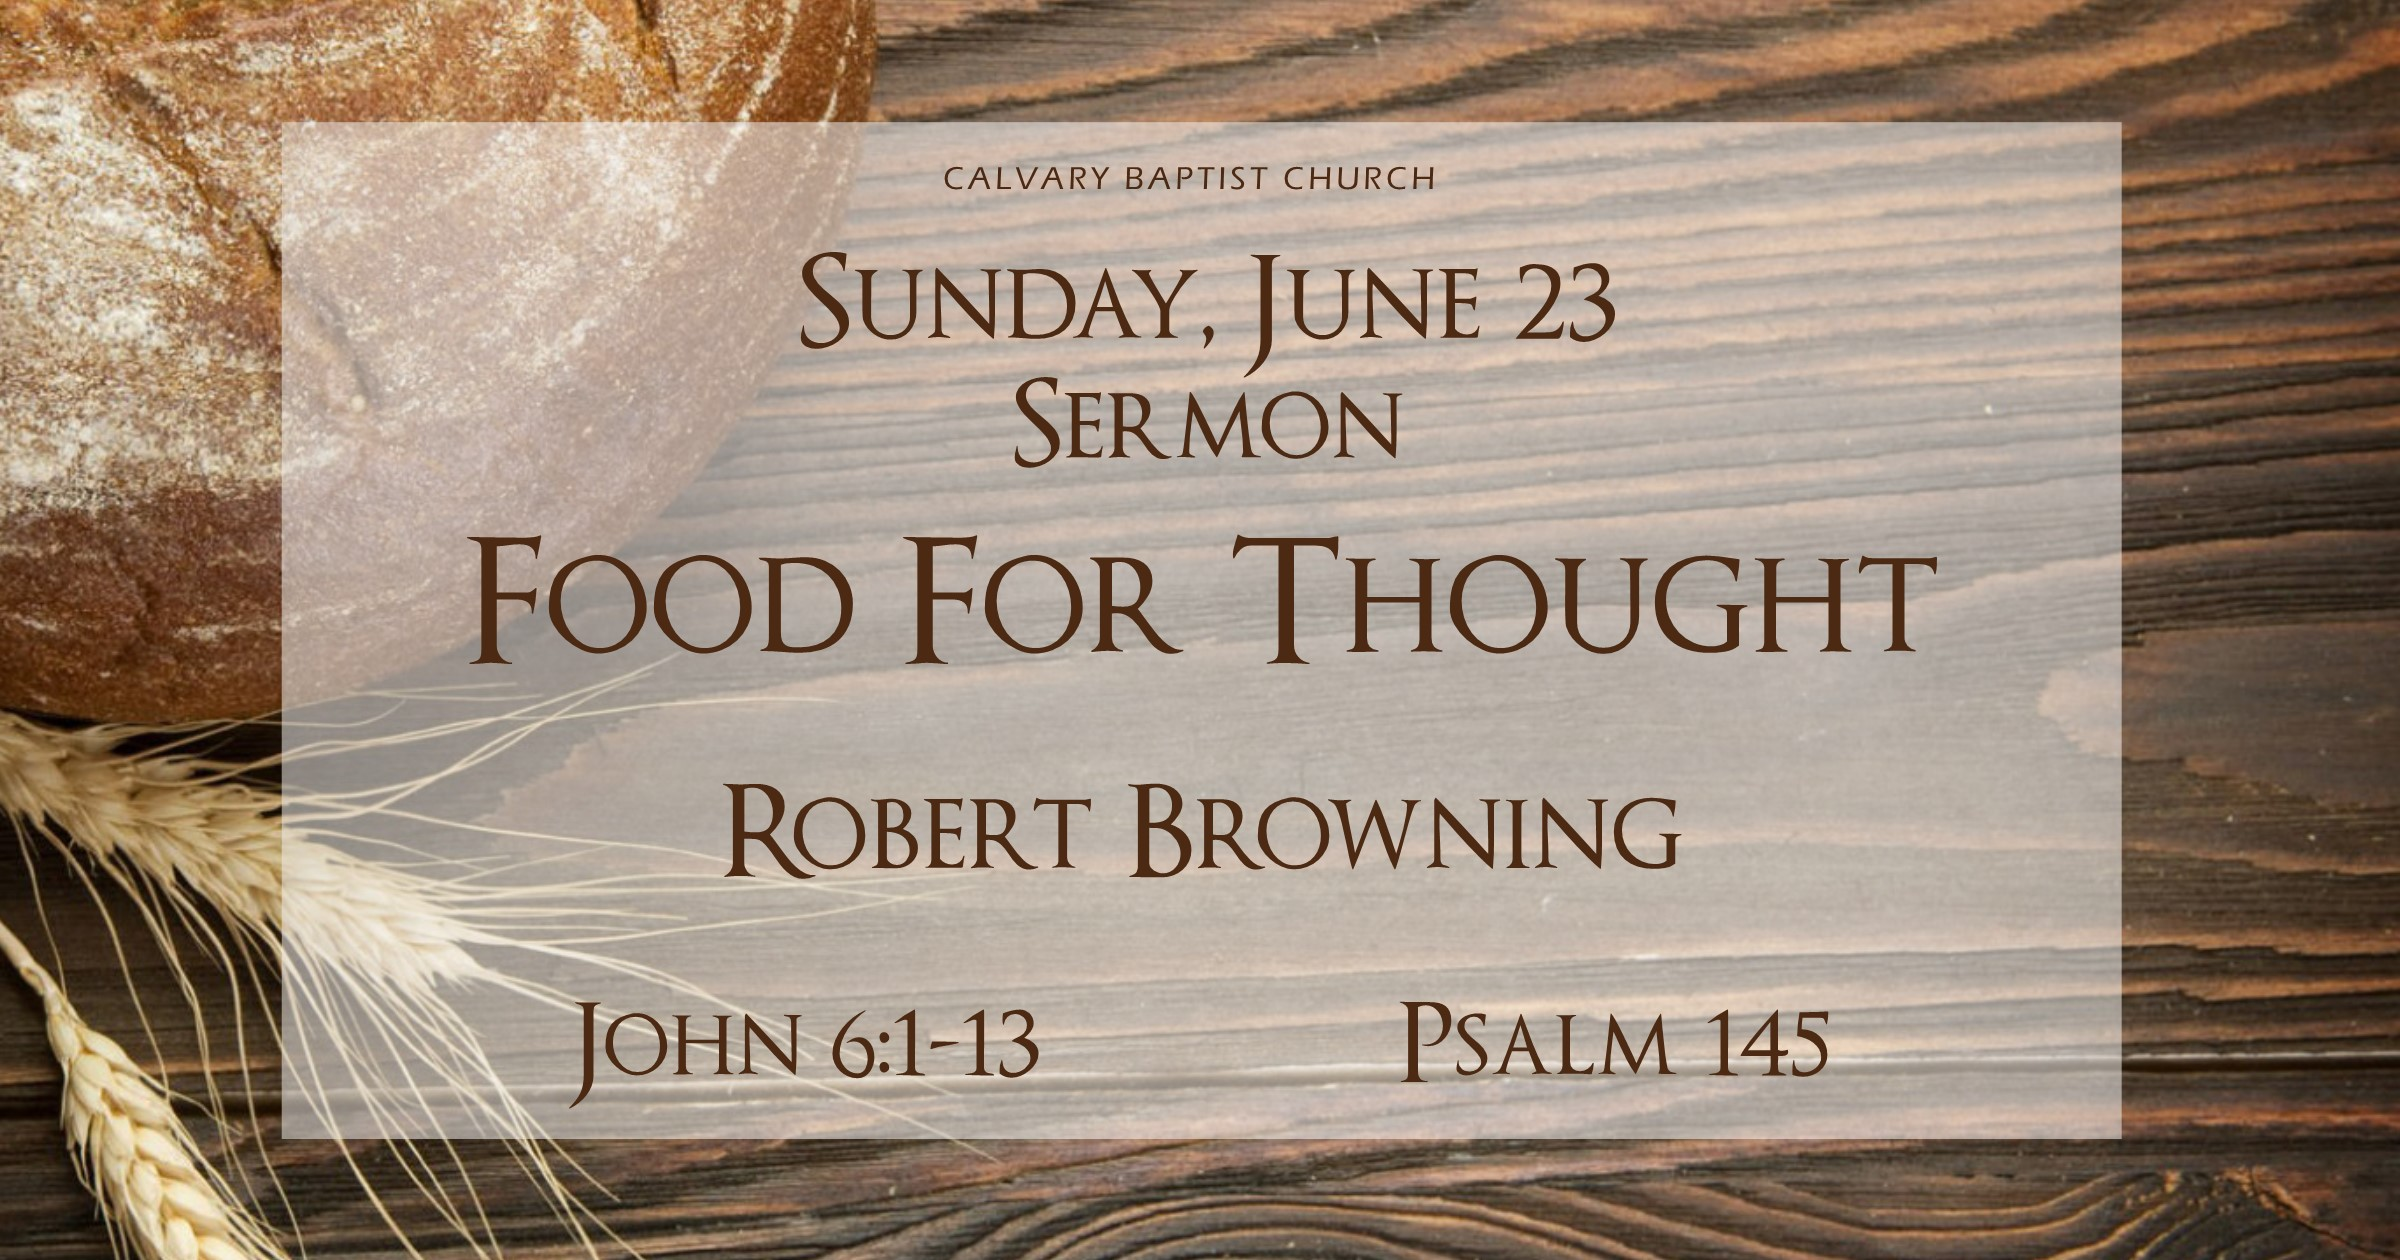 June 23 sermon fb image.jpg